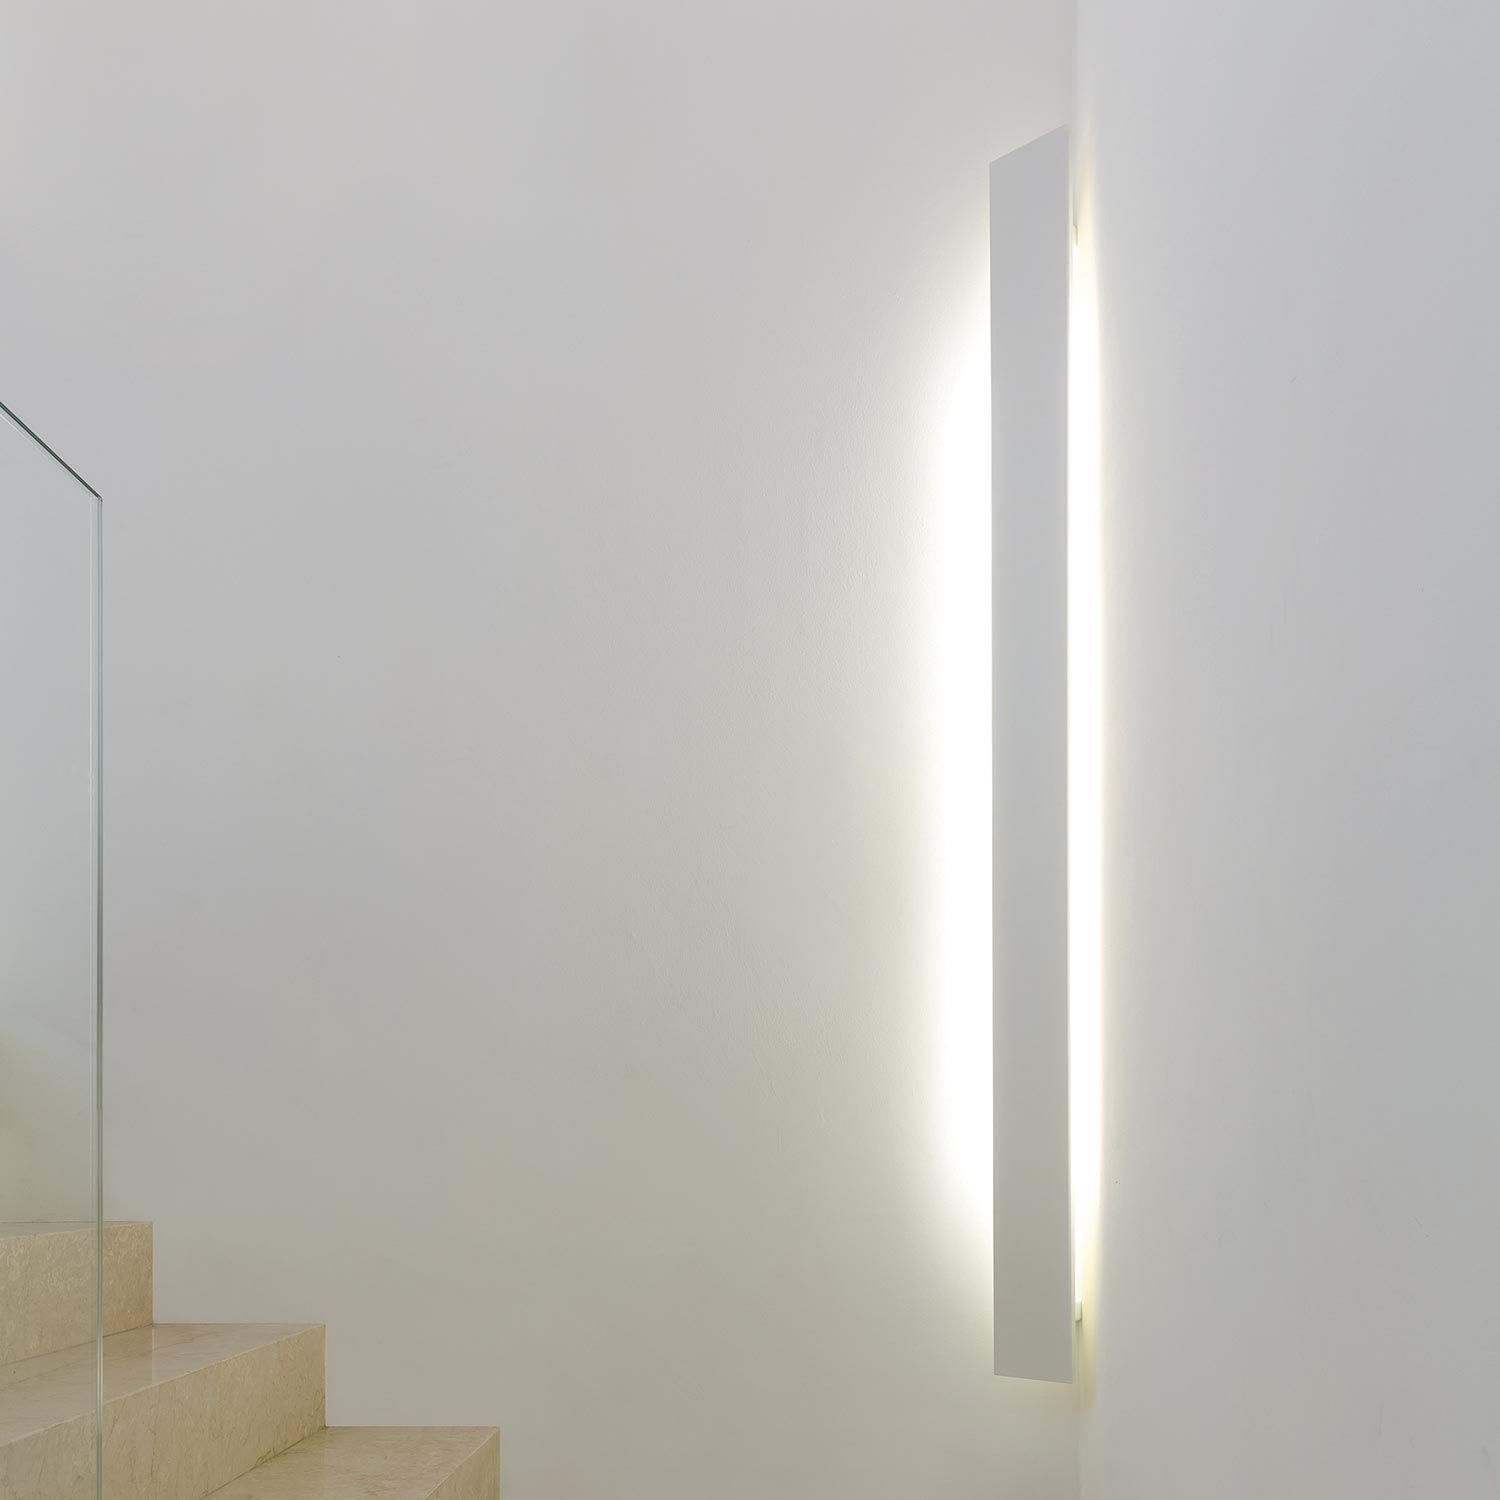 wall lighting fixture developed to